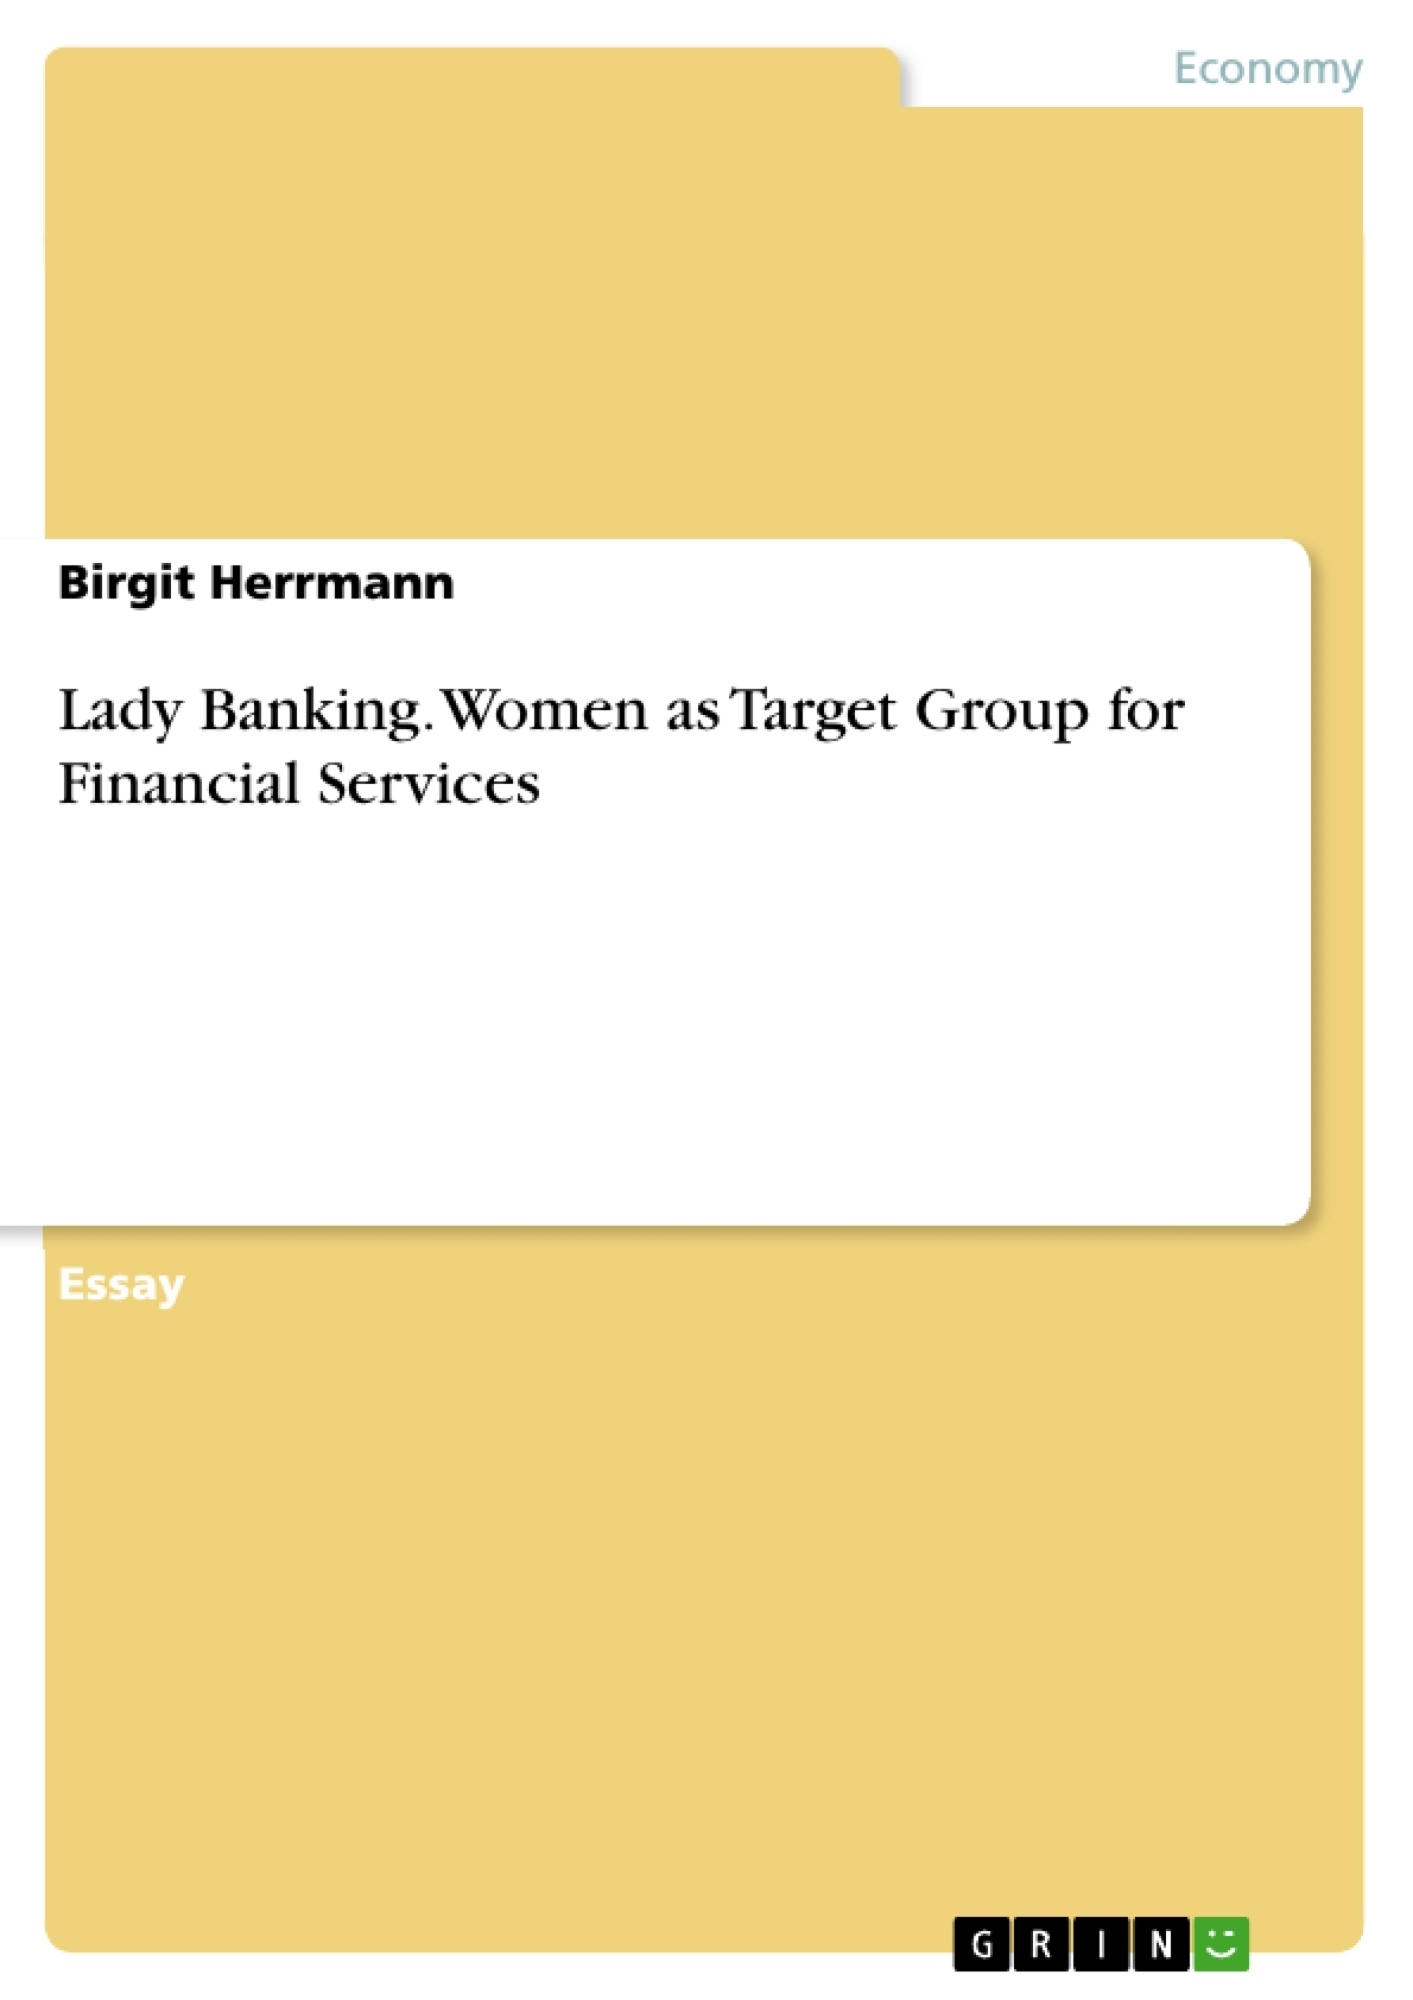 Title: Lady Banking. Women as Target Group for Financial Services